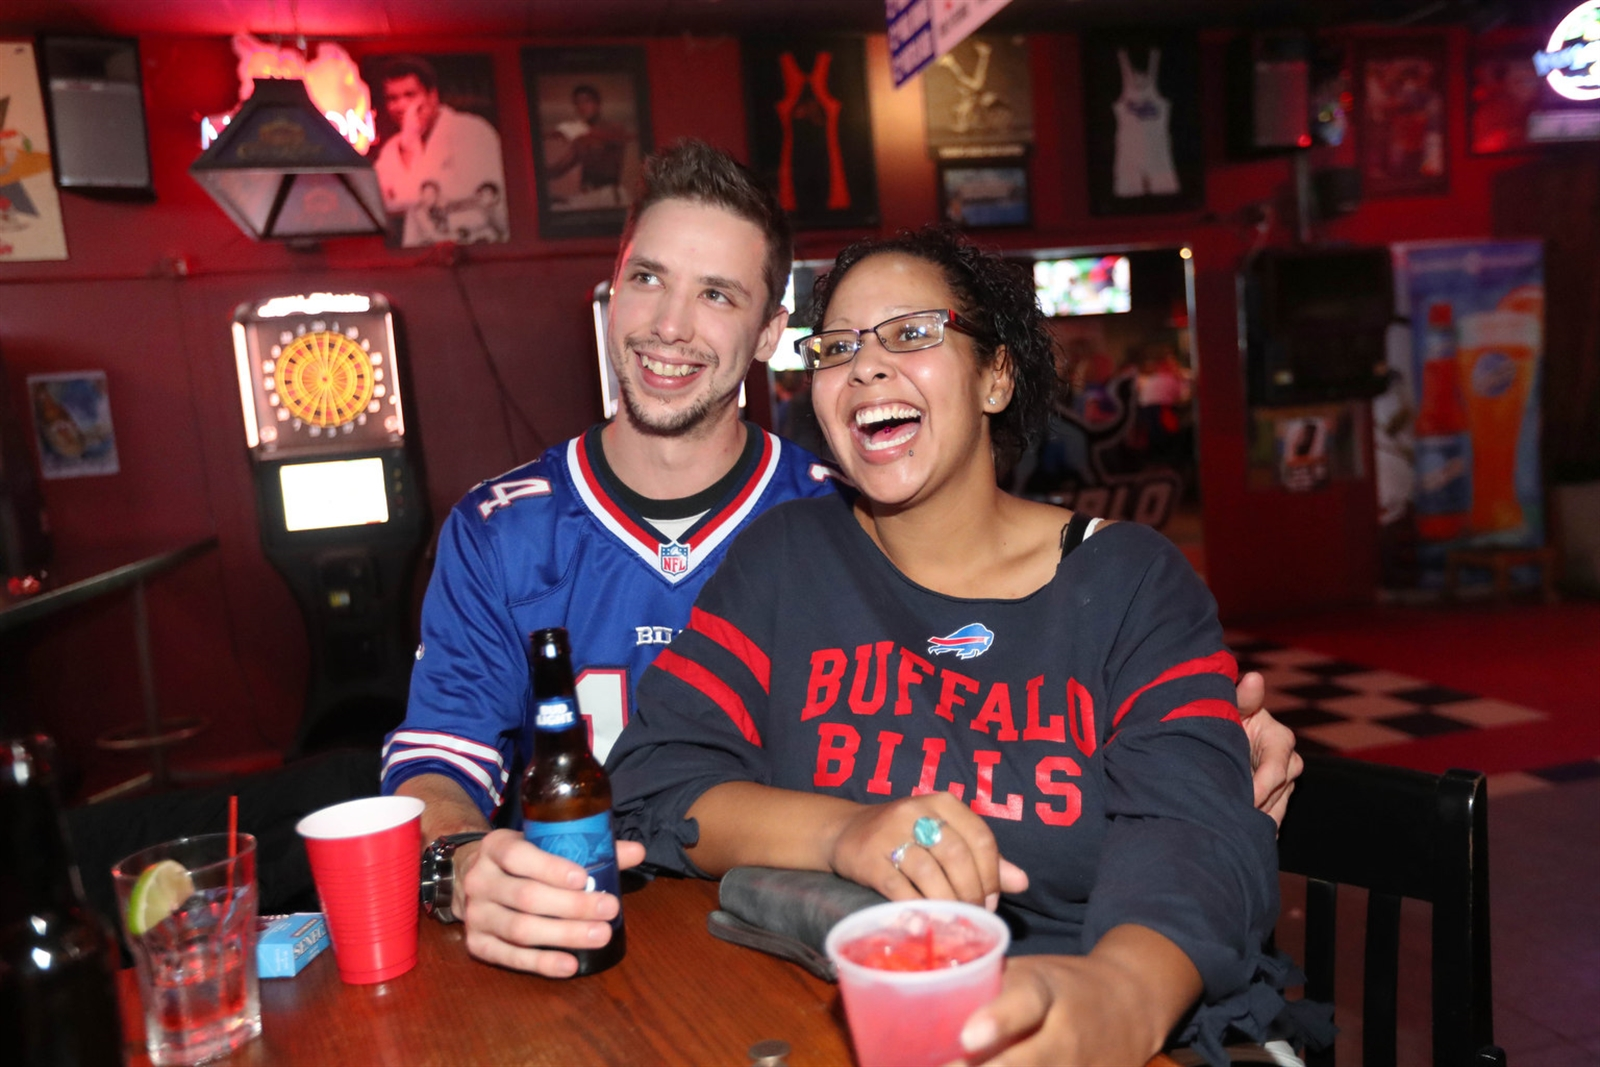 Stephen Gillis of North Tonawanda and Sasha Botting of Lockport watch the game.